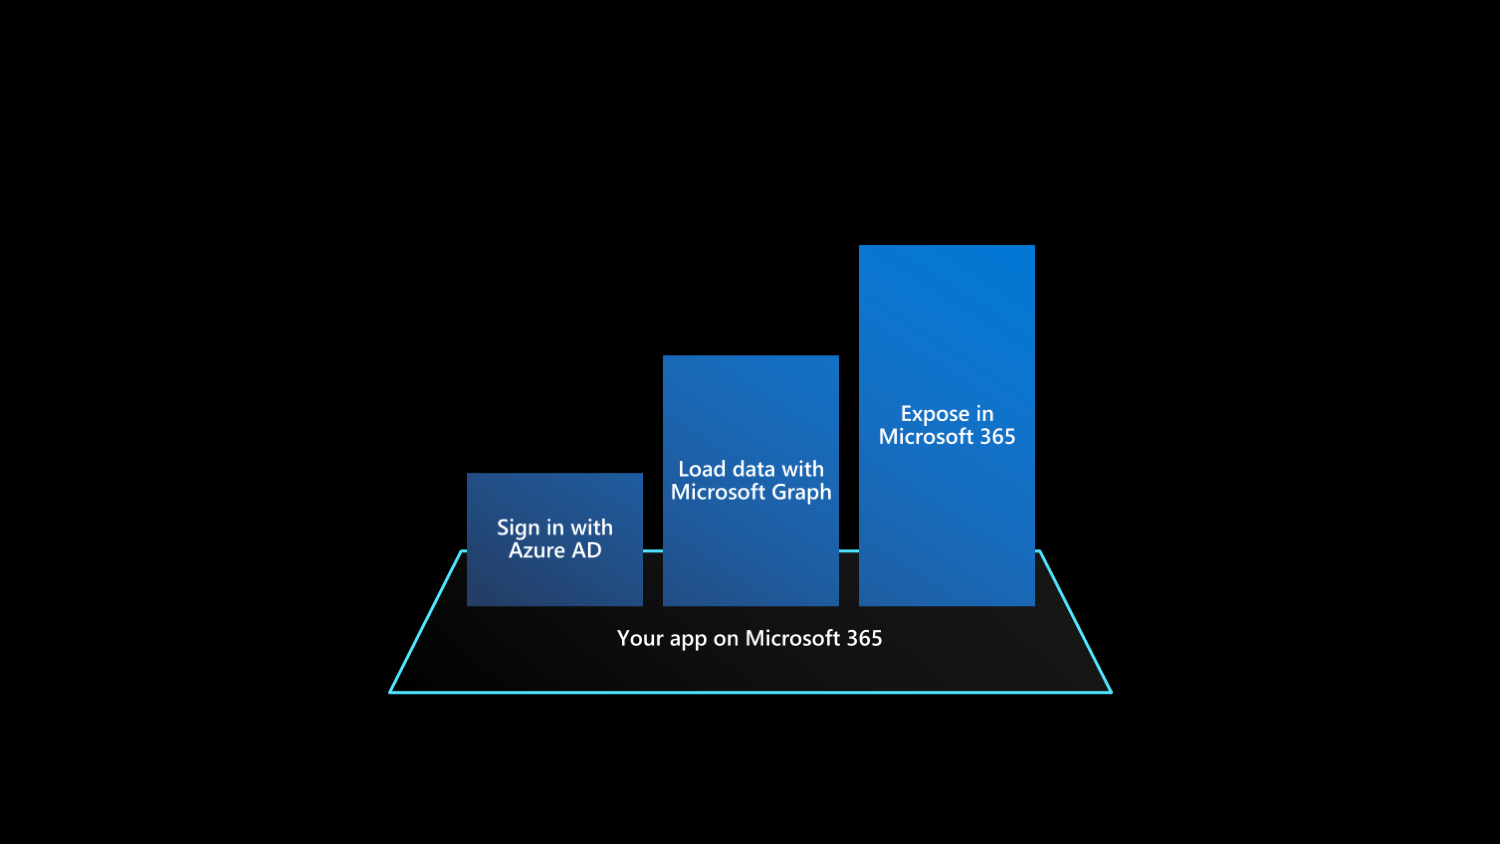 Chart showing three steps of bringing existing apps to Microsoft 365